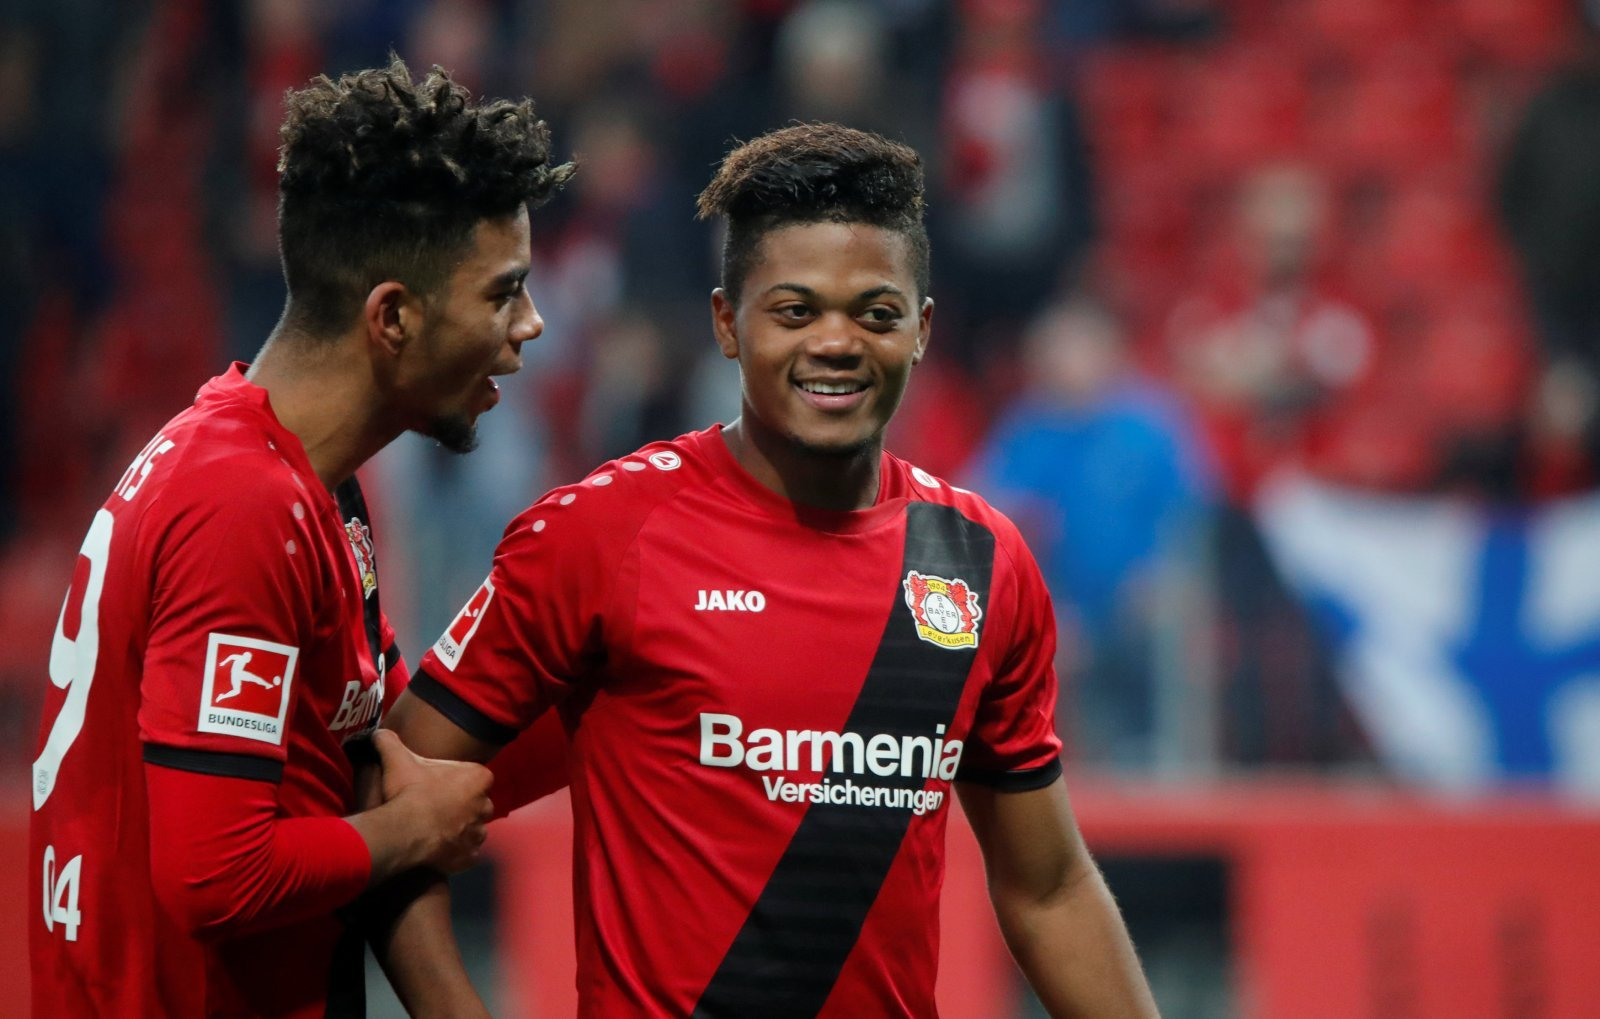 Arsenal fans on Twitter are desperate to secure Leon Bailey's signature